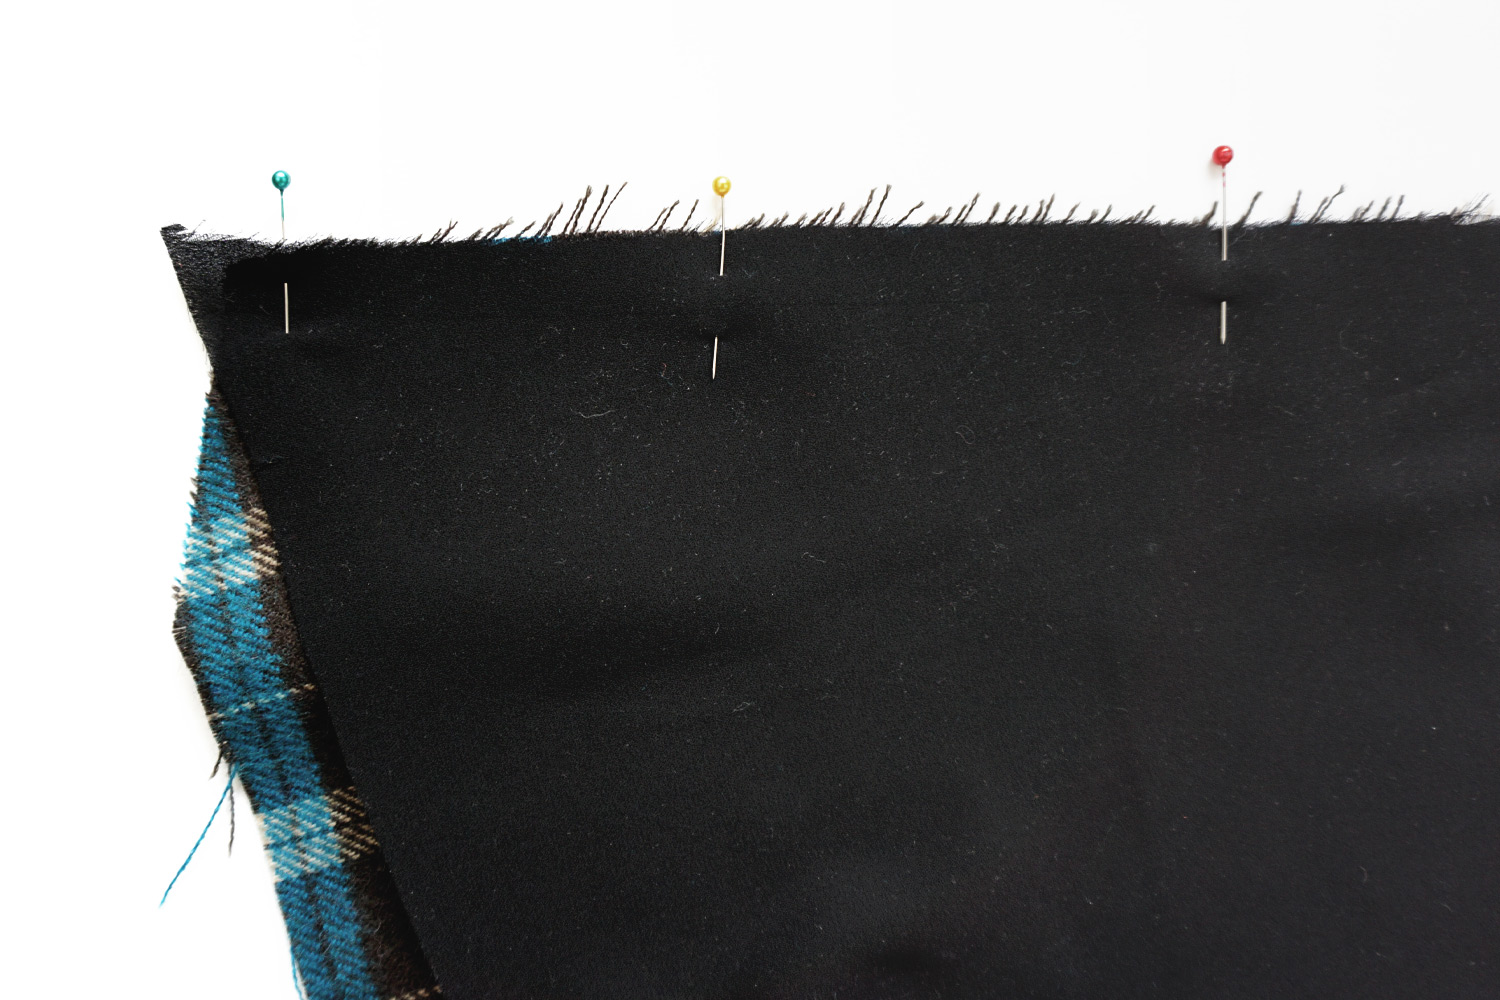 Nita Wrap Skirt Sewalong Day 4: Attach the Lining to the Skirt | Sew DIY